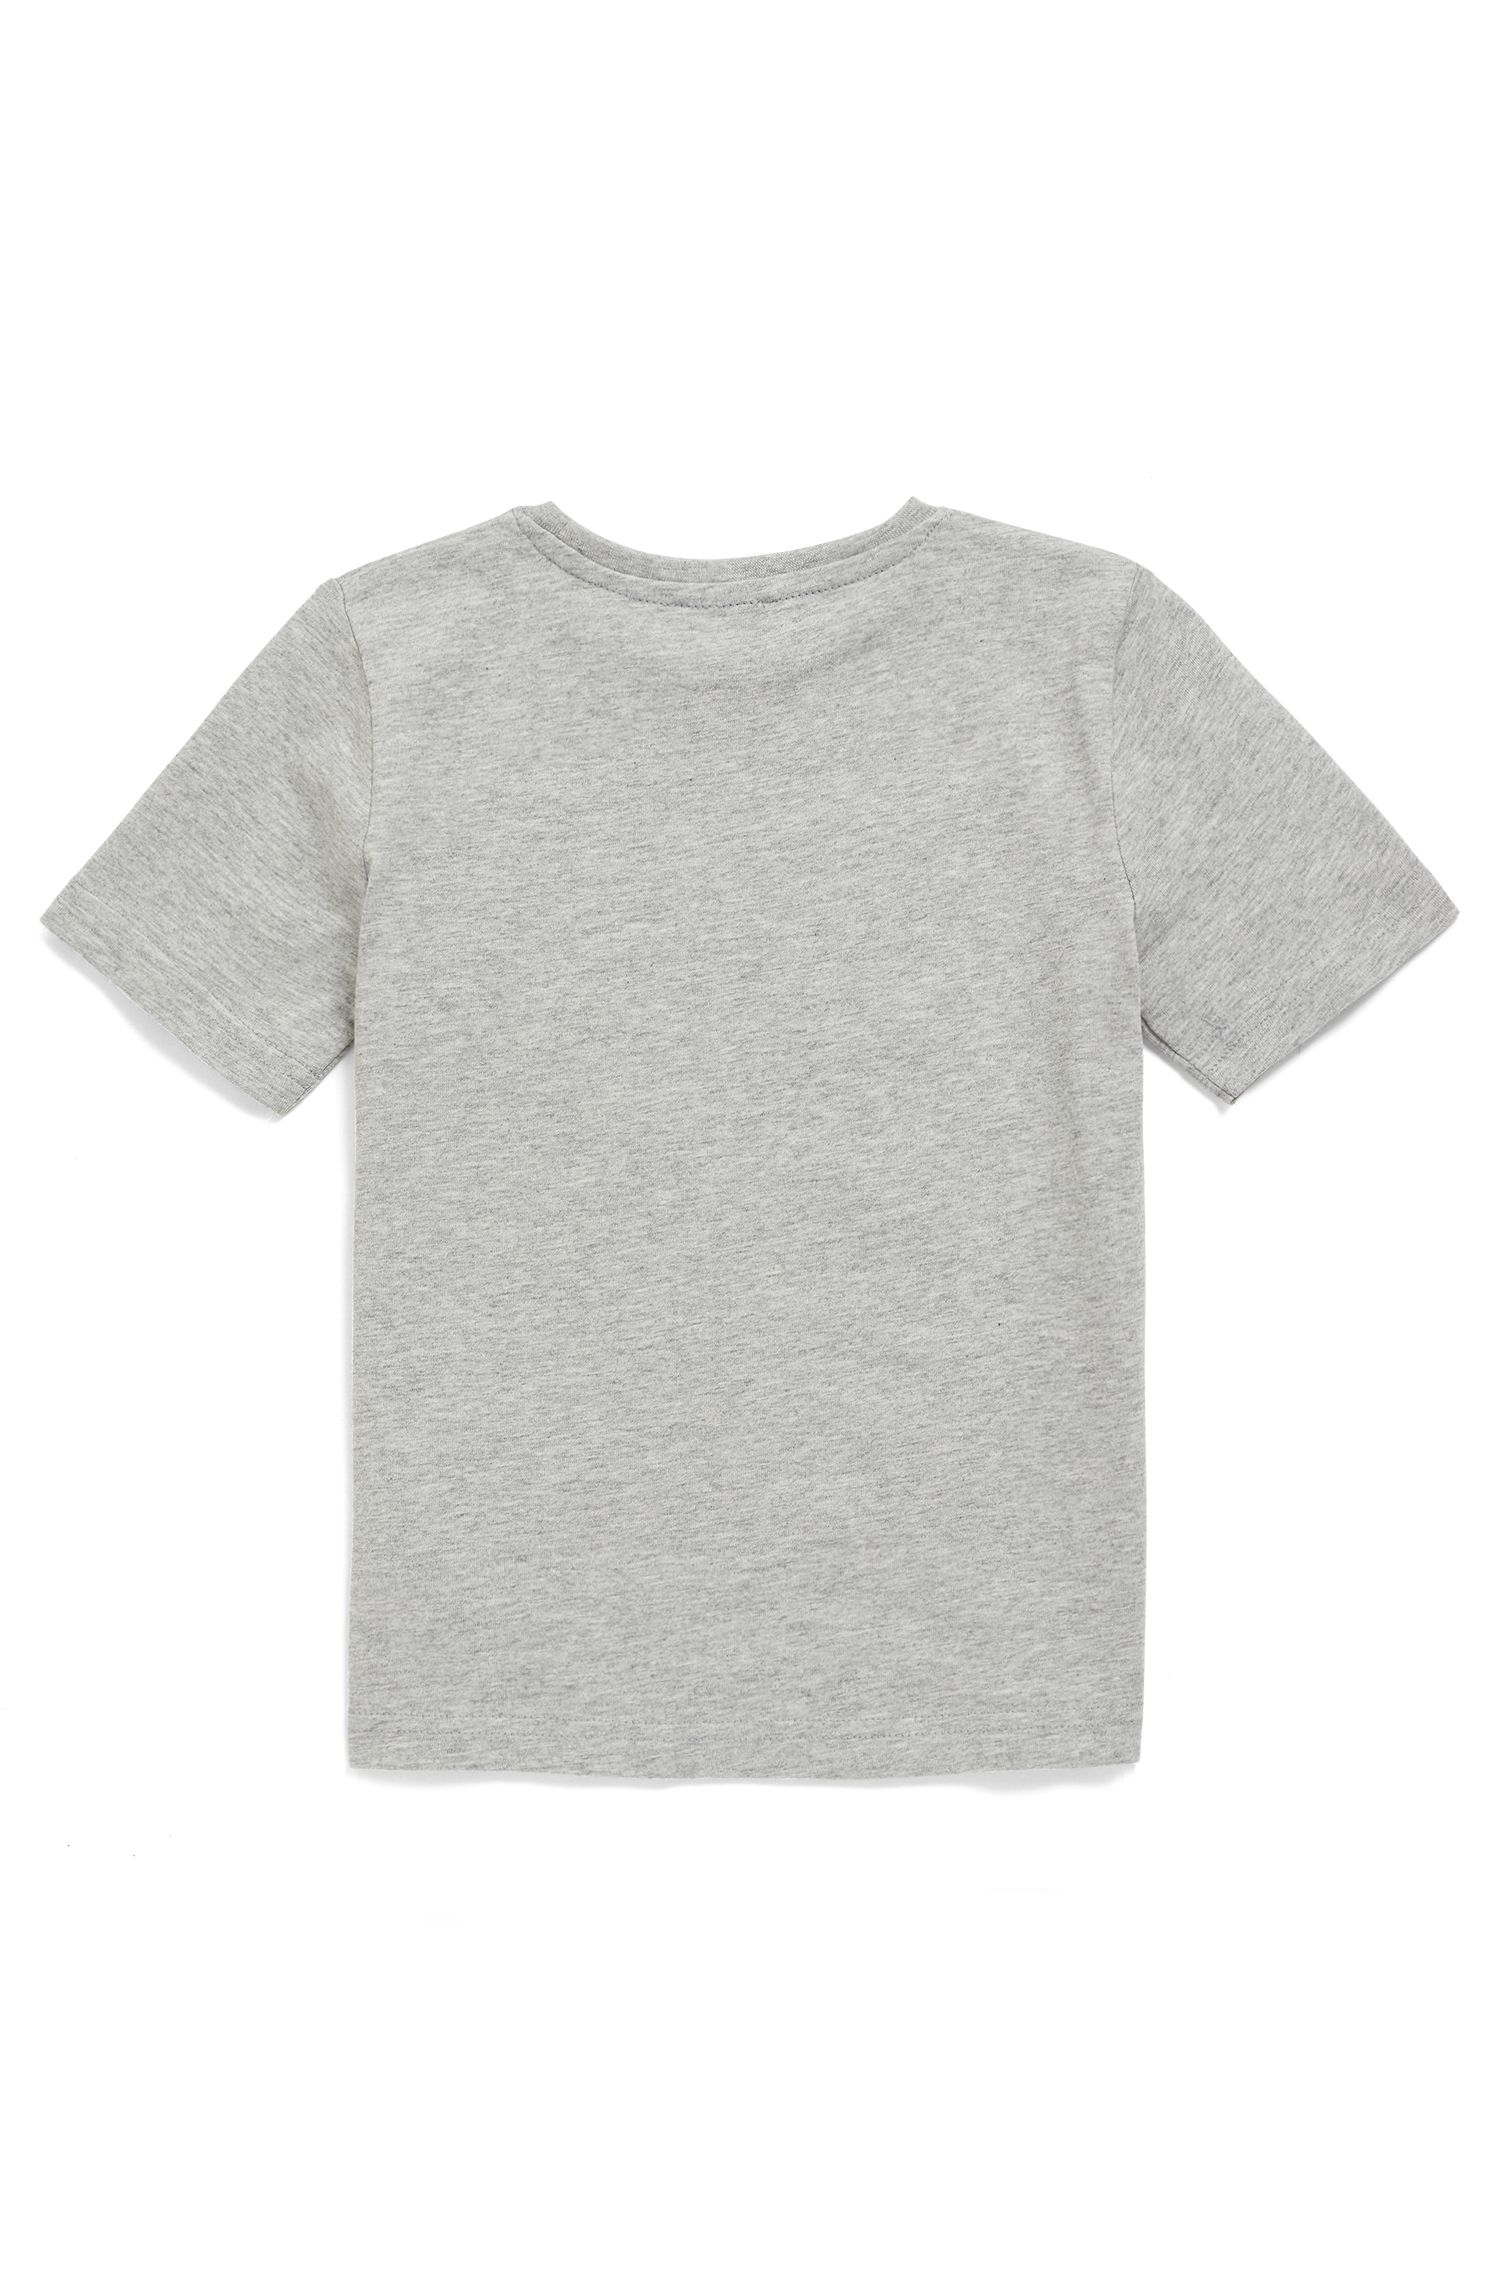 Kids' T-shirt in pure cotton with multicoloured logo print, Grey